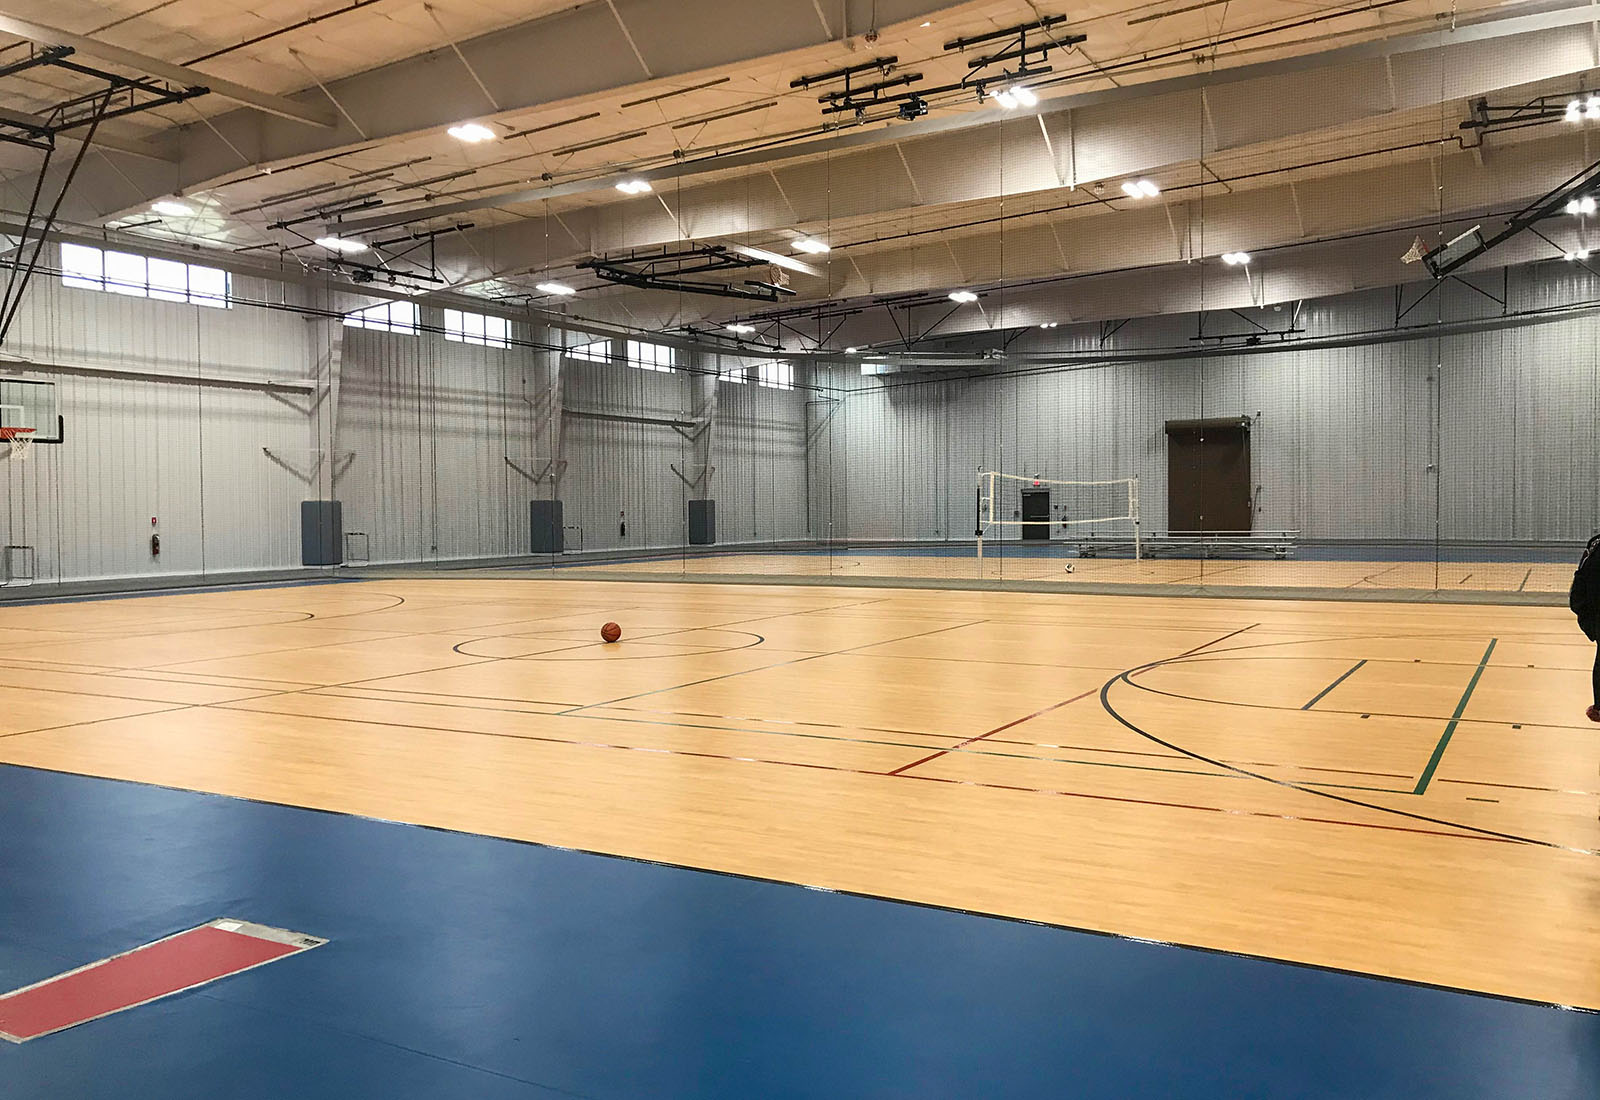 The Albany Academies New James E Poole Athletic Facility Design-Builder Project